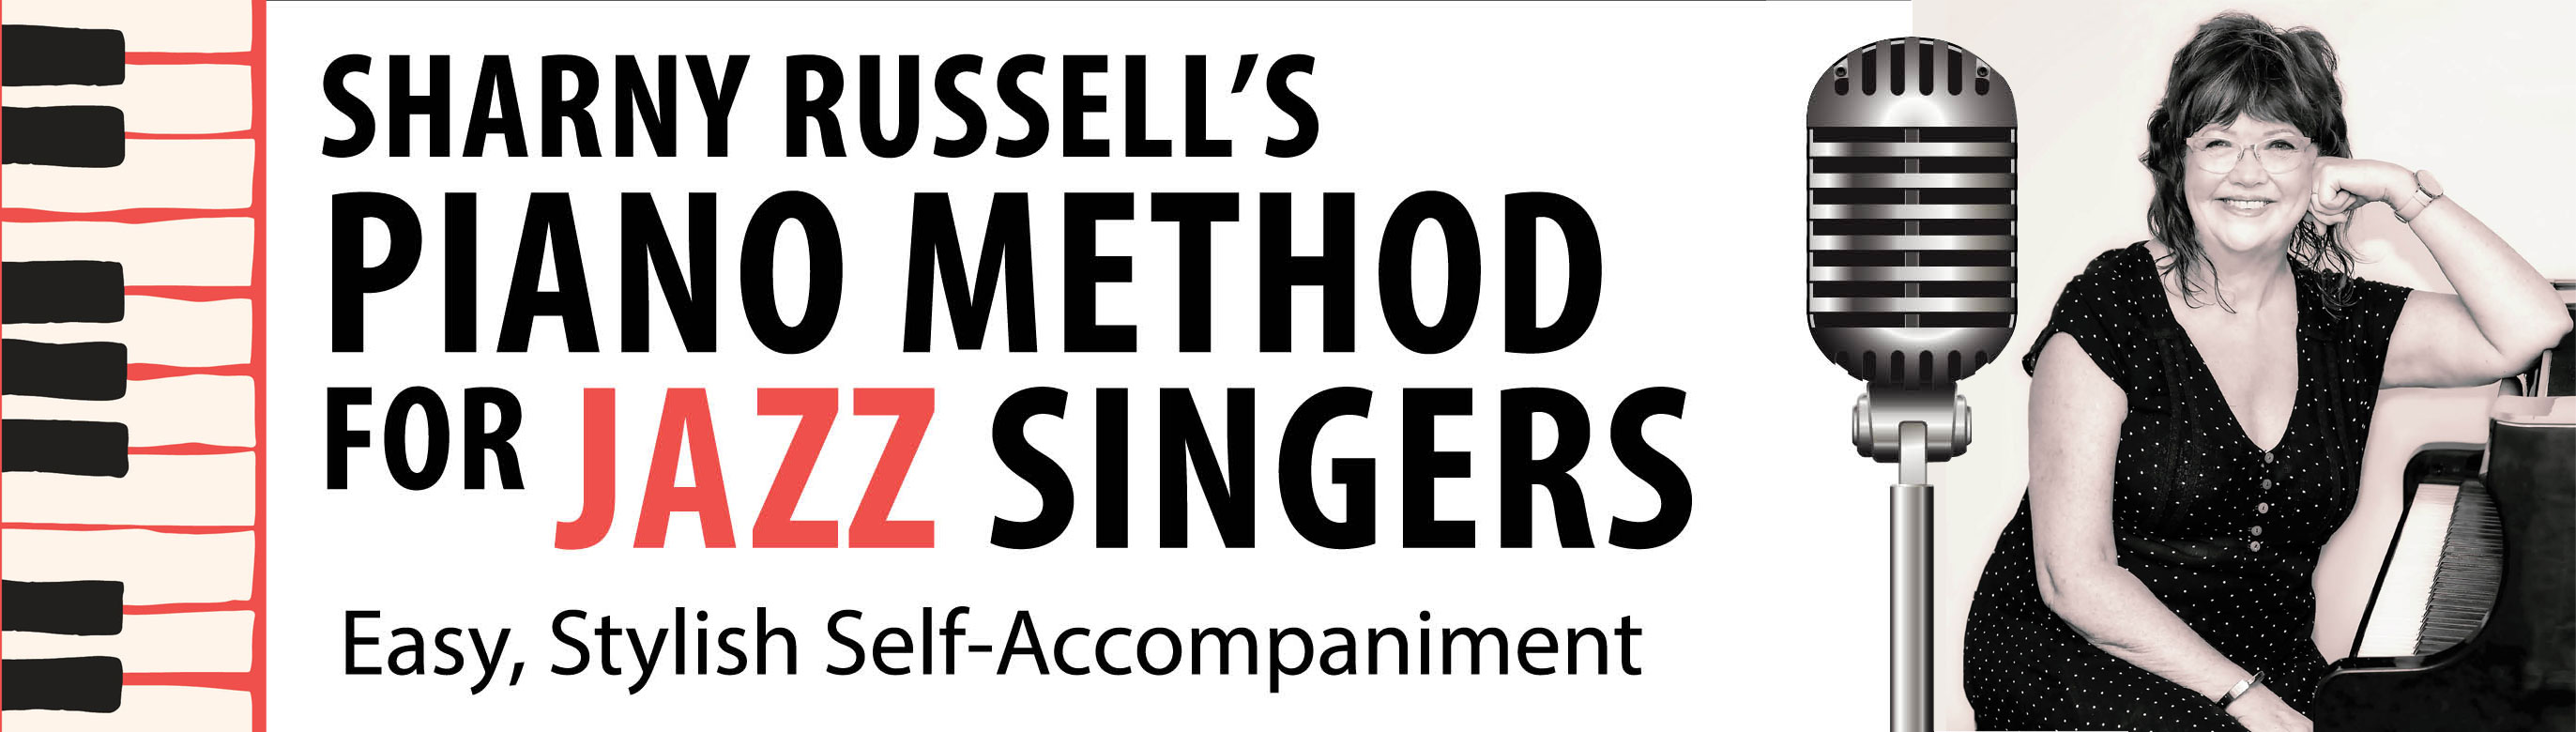 Sharny Russell Piano Method for Jazz Singers